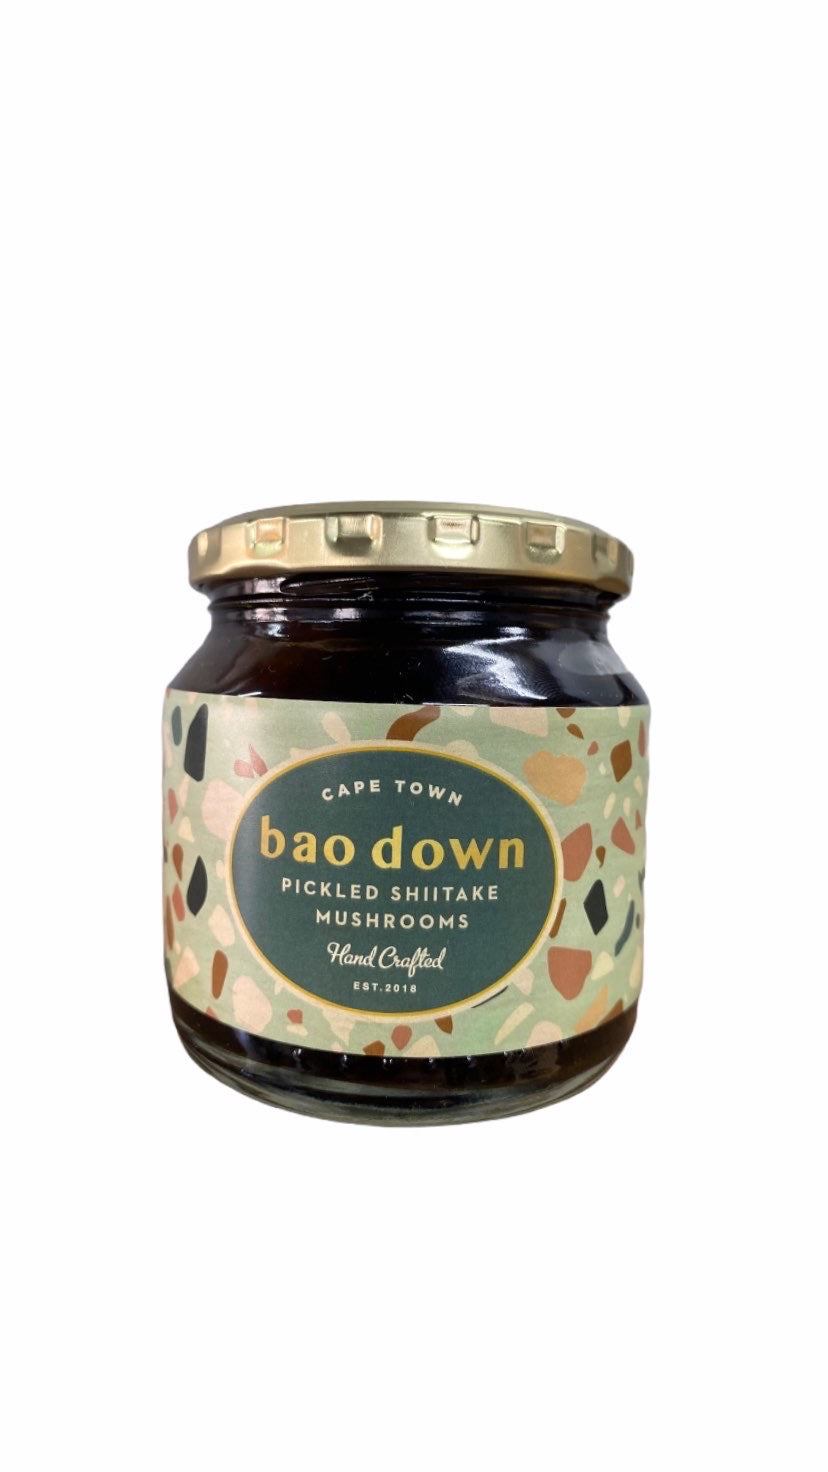 Baodown Pickled Shiitake Mushrooms